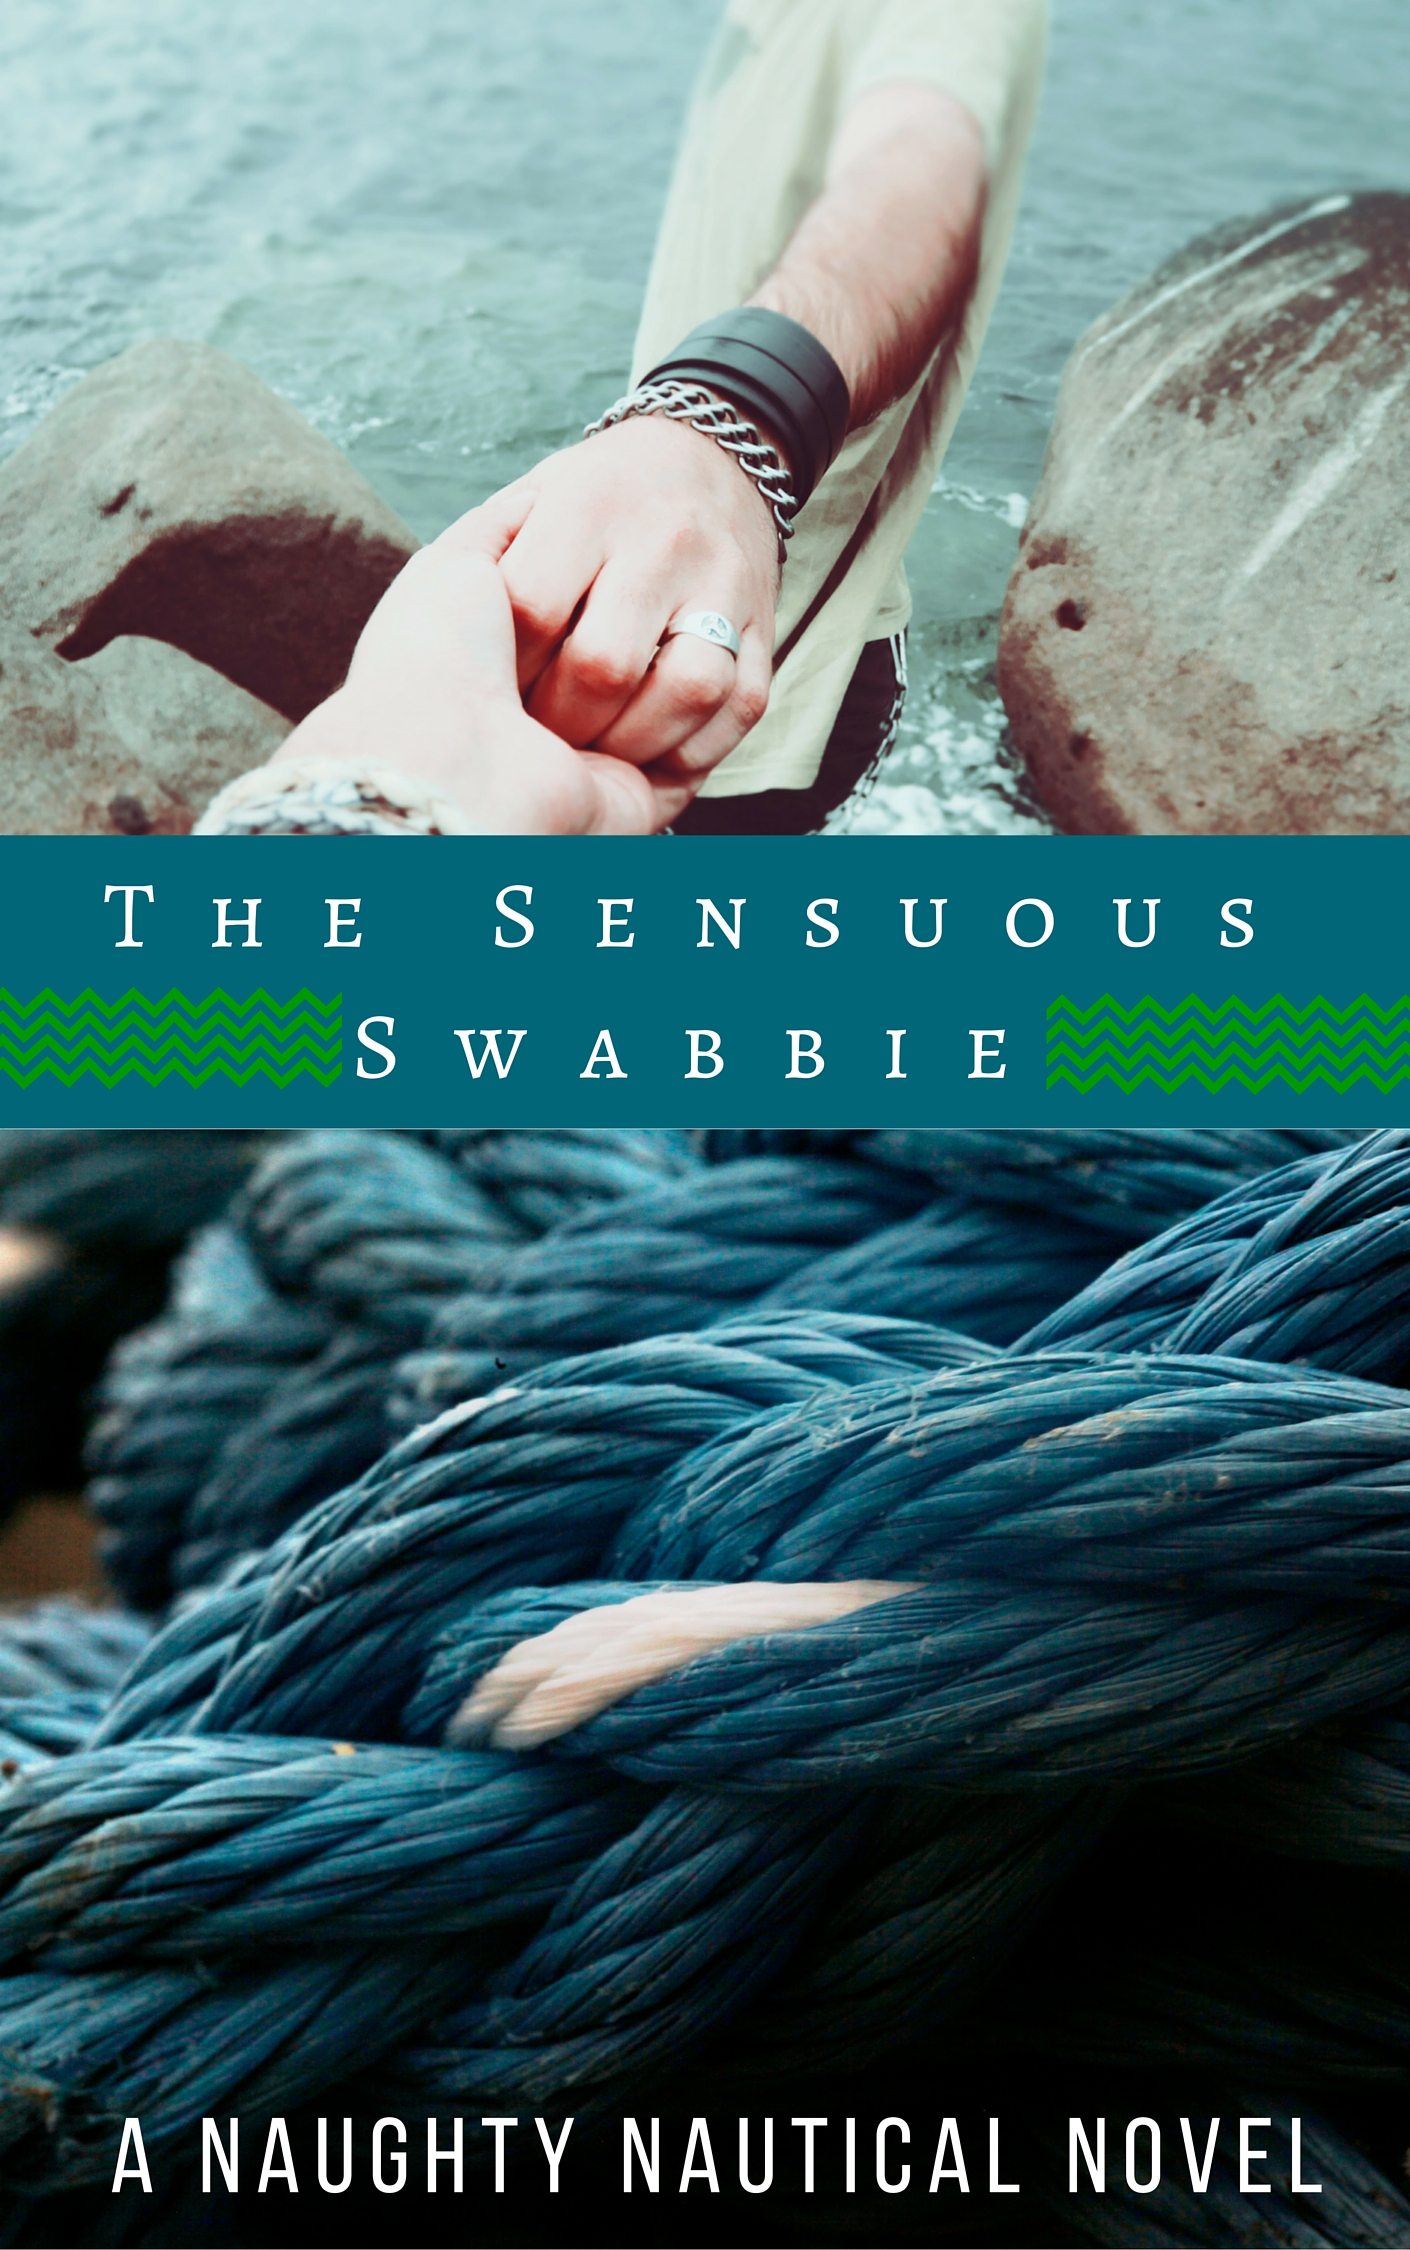 Two images. Above, a lanky young man with thick leather and twine bracelets holds out his hand to someone else. Below, a knot of deep blue rope in close-up. Title text: the Sensuous Swabbie, a Naughty Nautical novel.